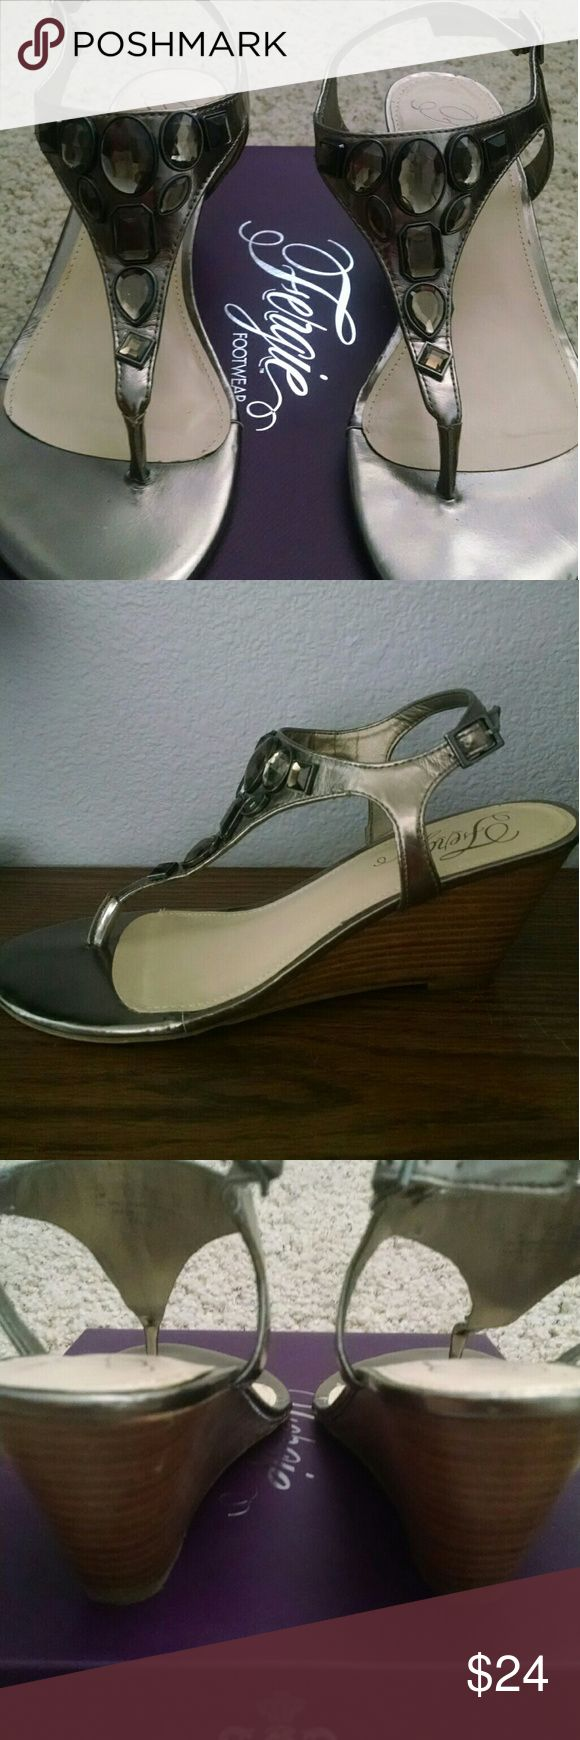 """Fergie Gem Embellished Wedge Sandal Pewter color, thong style wedge slingback sandal; neutral color goes with everything! Excellent condition, worn only a handful of times. Adjustable side buckle strap; heel height approx. 3""""; manmade upper and sole. Fergie Shoes Sandals"""